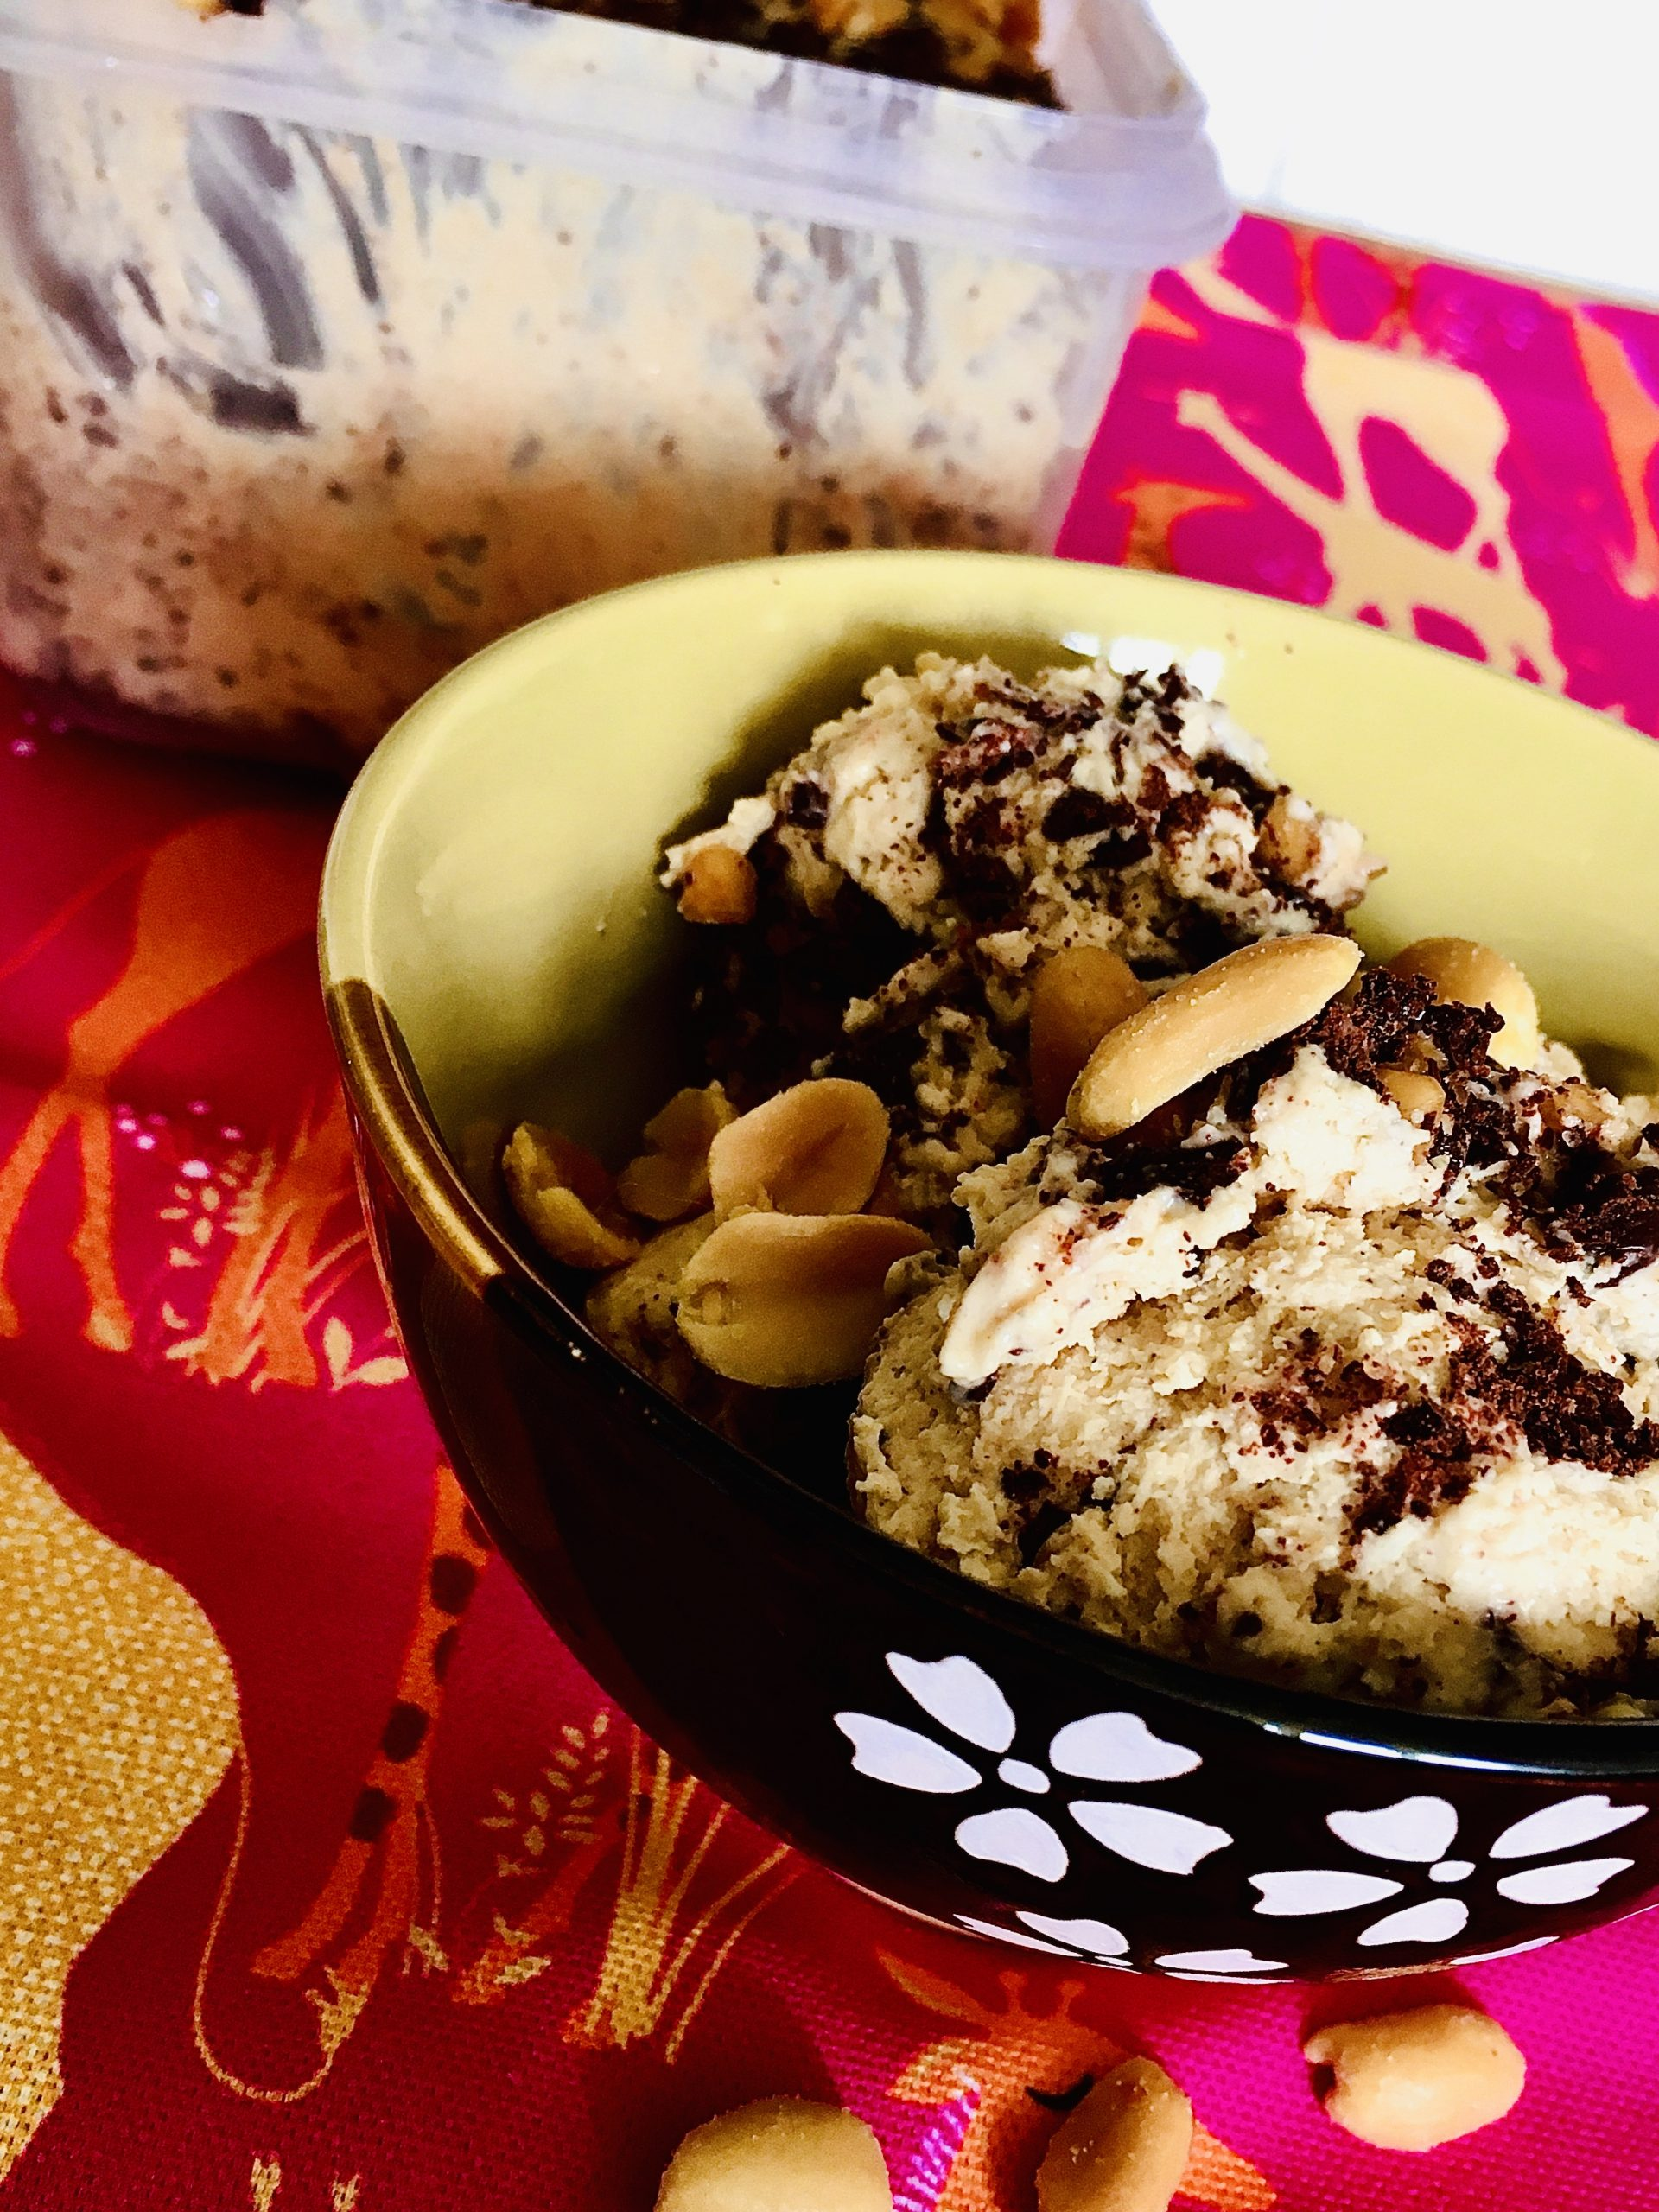 Scoops of peanut butter and chocolate swirl ice cream in a bowl on a pink cloth, next to the ice cream tub